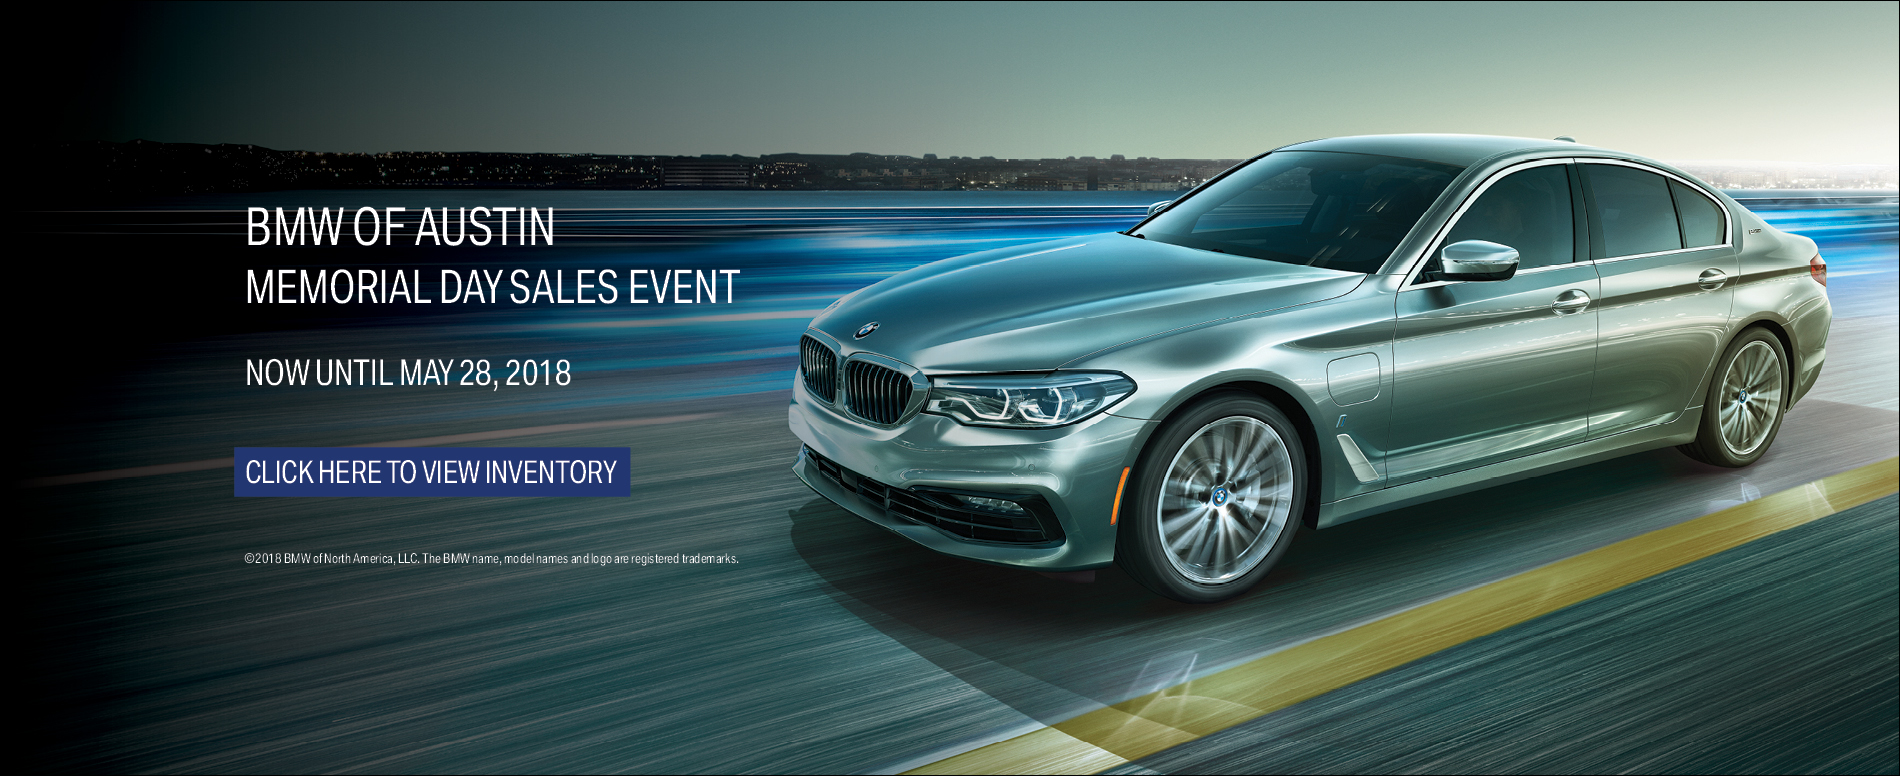 BMW Car Dealer - Austin, Round Rock, & Cedar Park, TX ...